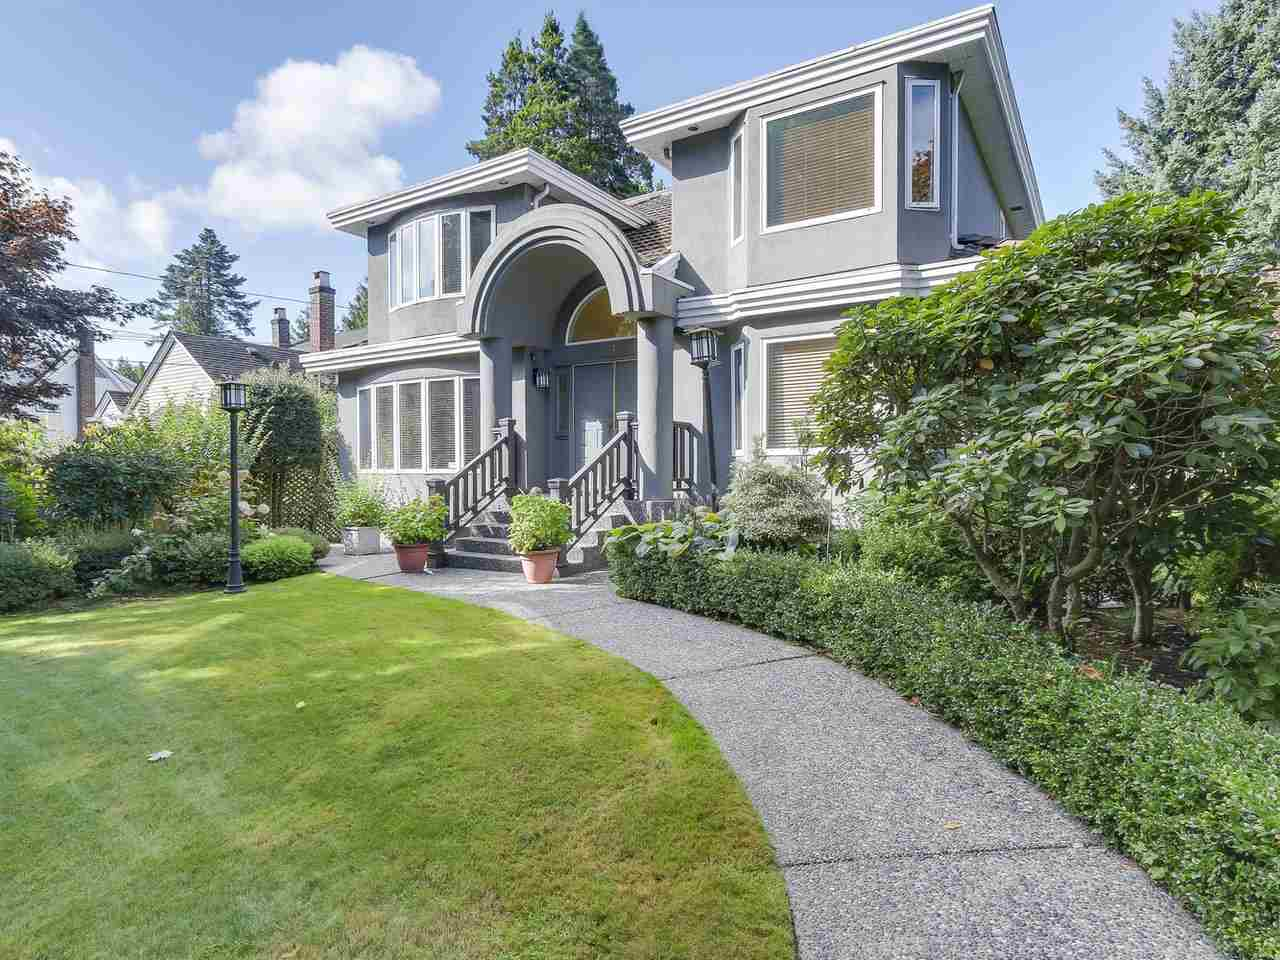 Main Photo: 5725 HOLLAND Street in Vancouver: Southlands House for sale (Vancouver West)  : MLS® # R2206914